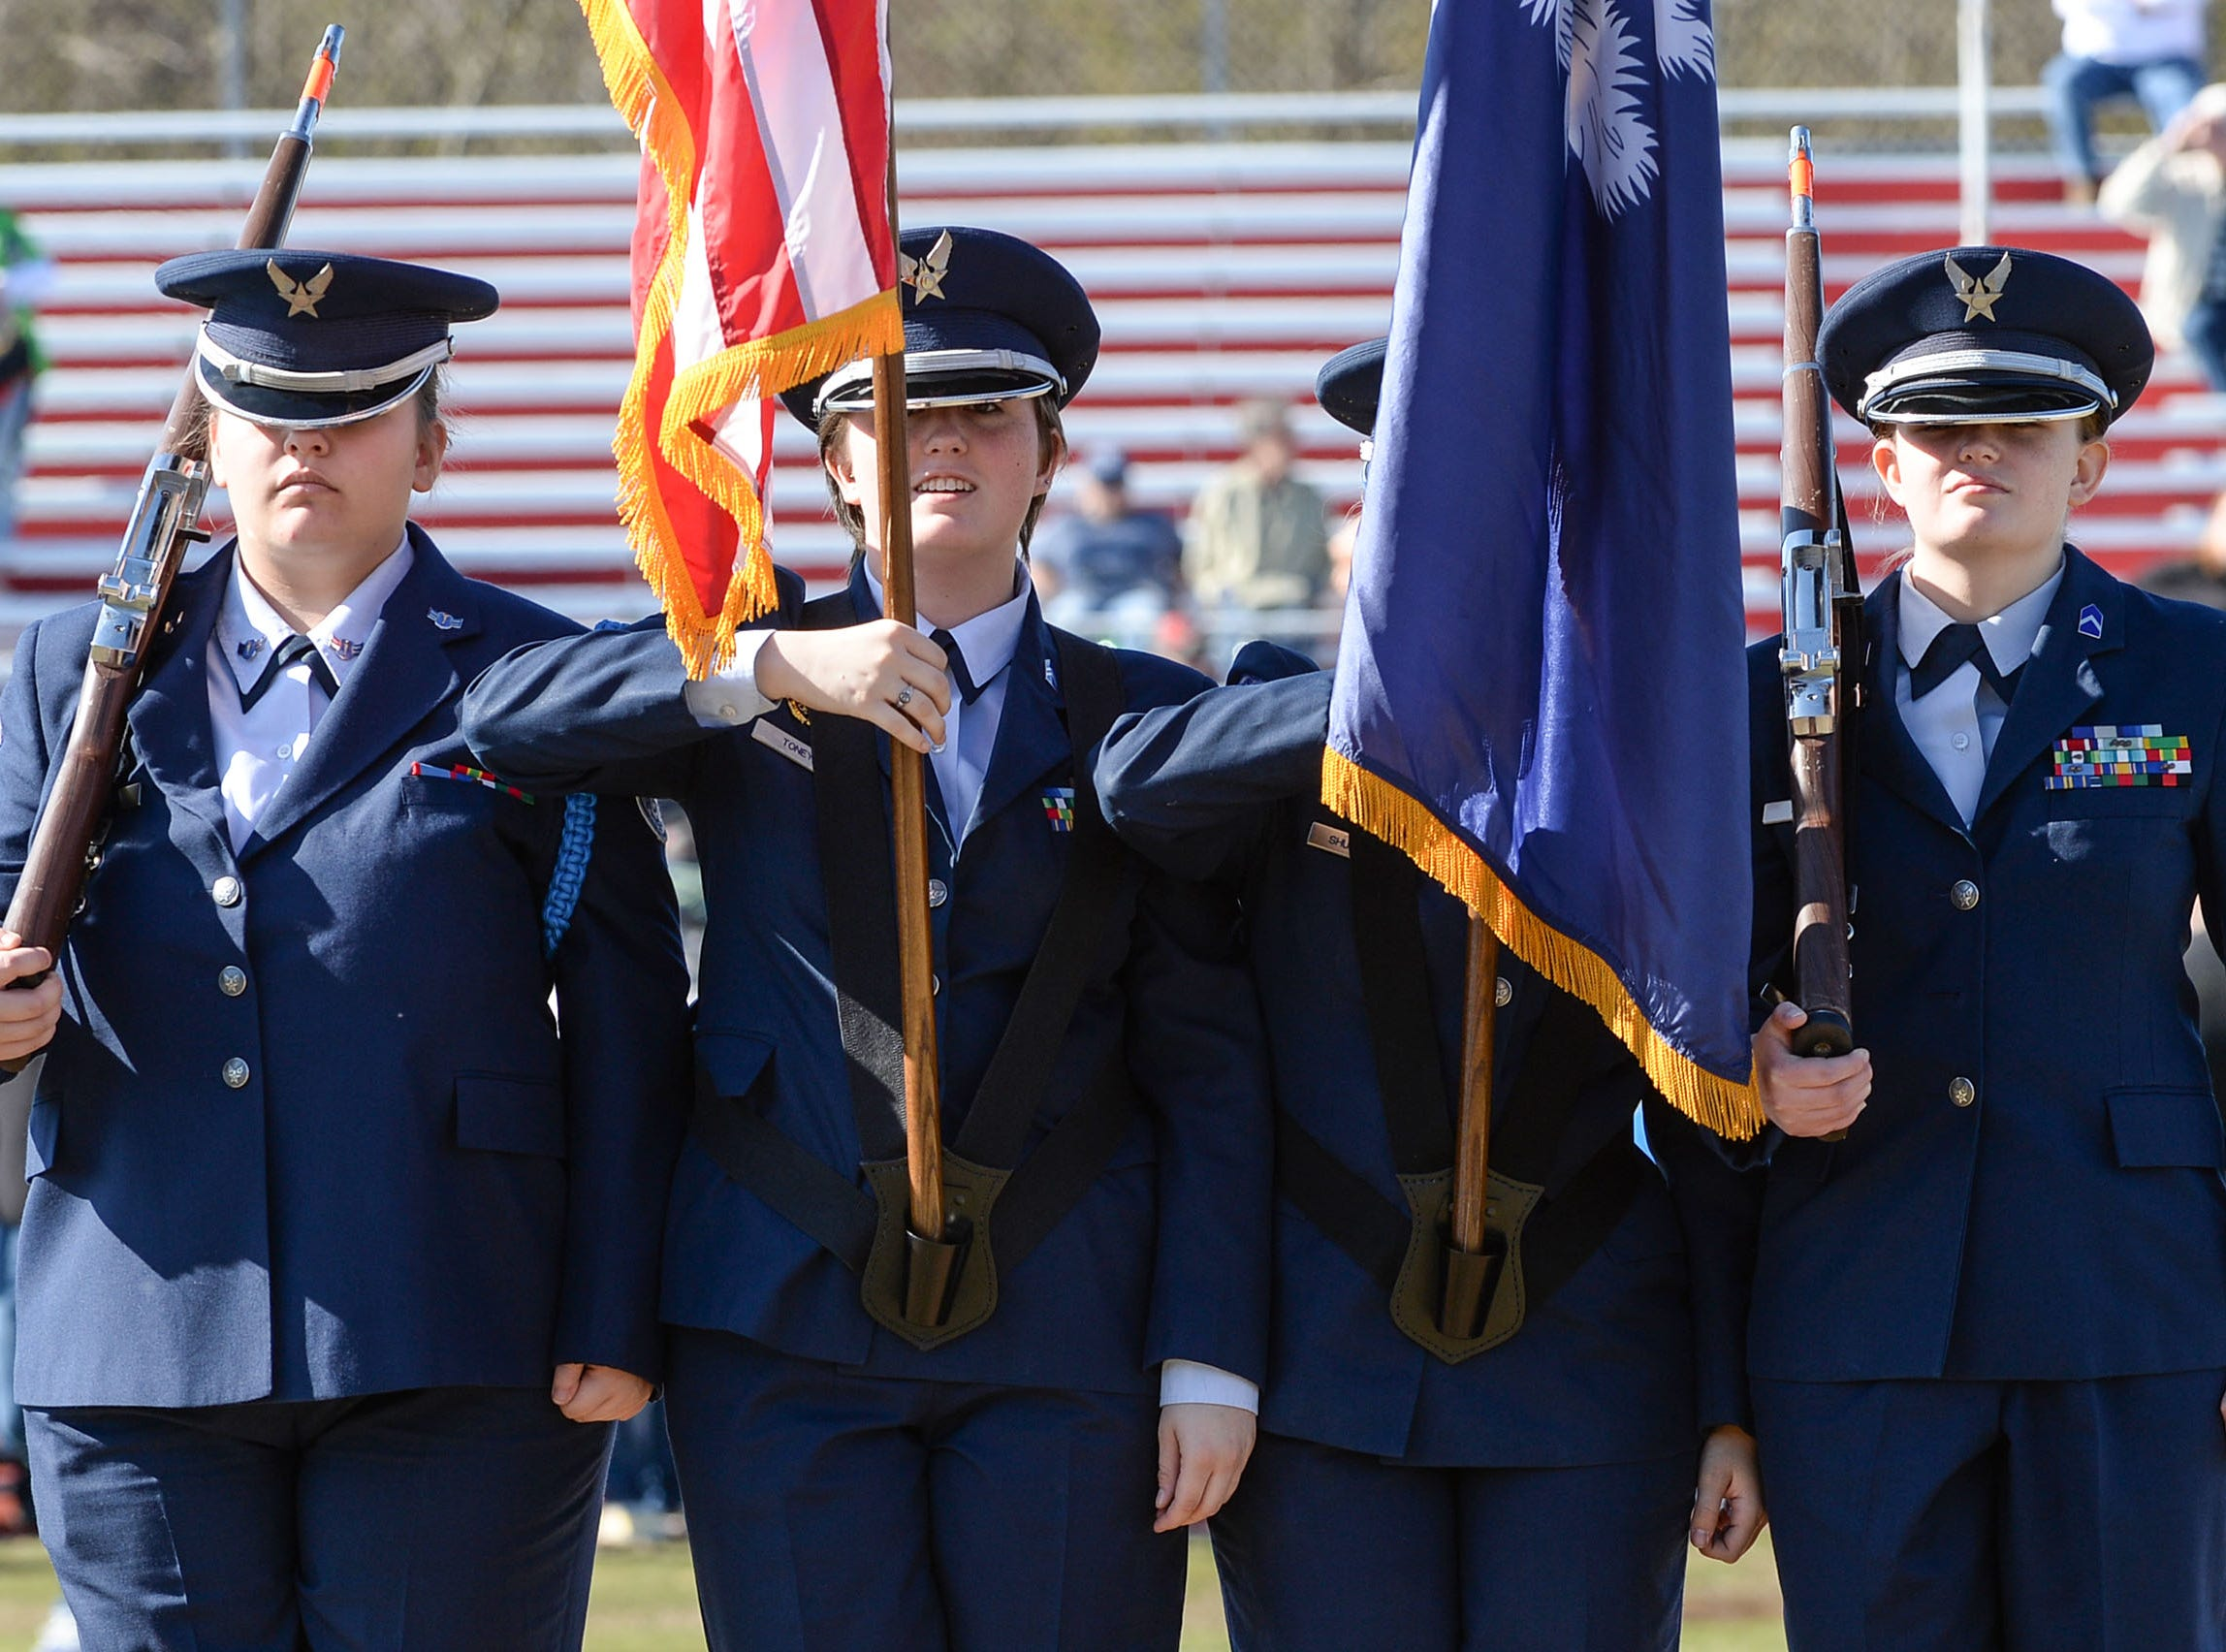 Belton-Honea Path High School Air Force JROTC color guard for the National Anthem during the Special Olympics South Carolina Area 14 Spring Games at Marlee Gambrell field at Belton-Honea Path High School Wednesday.